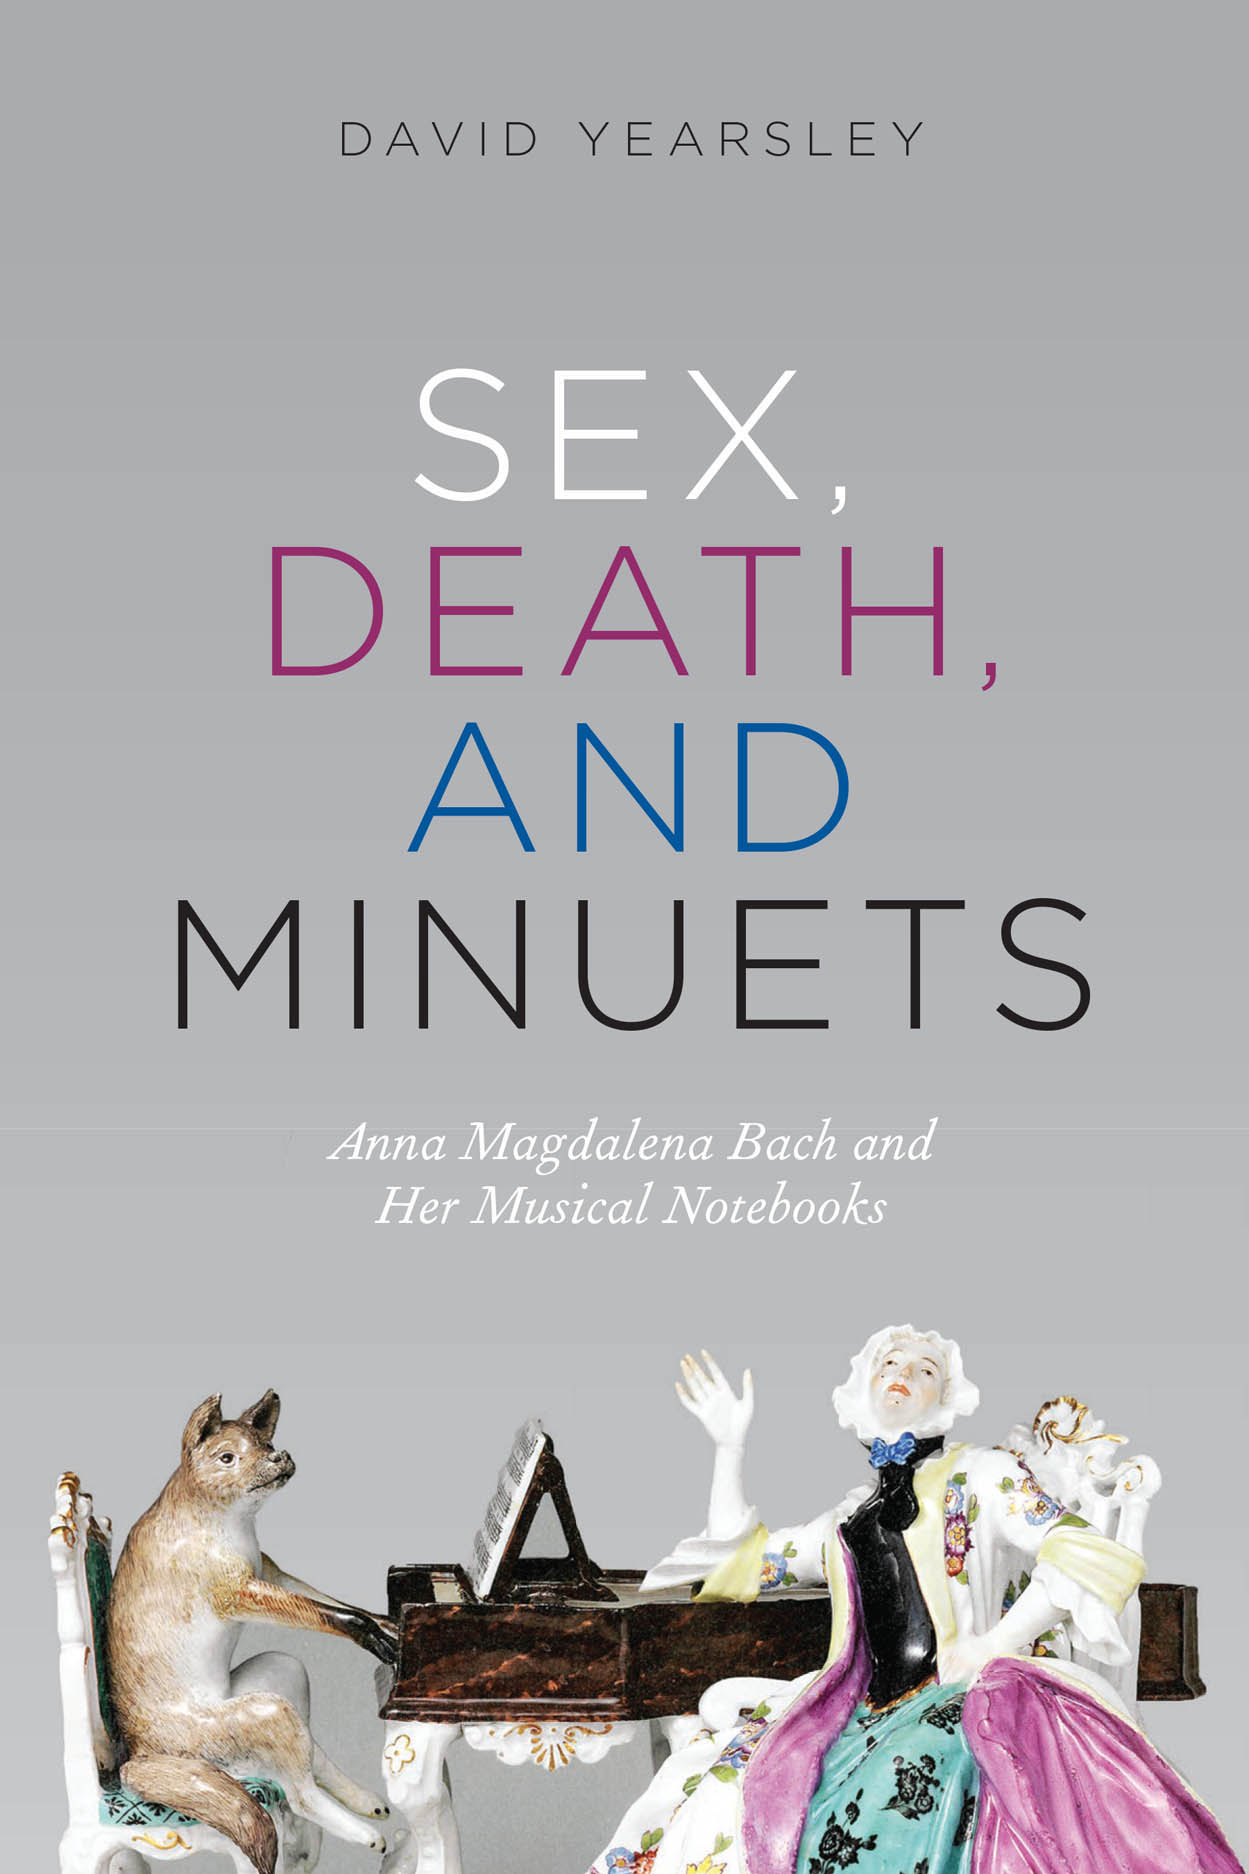 Sex, Death, and Minuets: Anna Magdalena Bach and Her Musical Notebooks